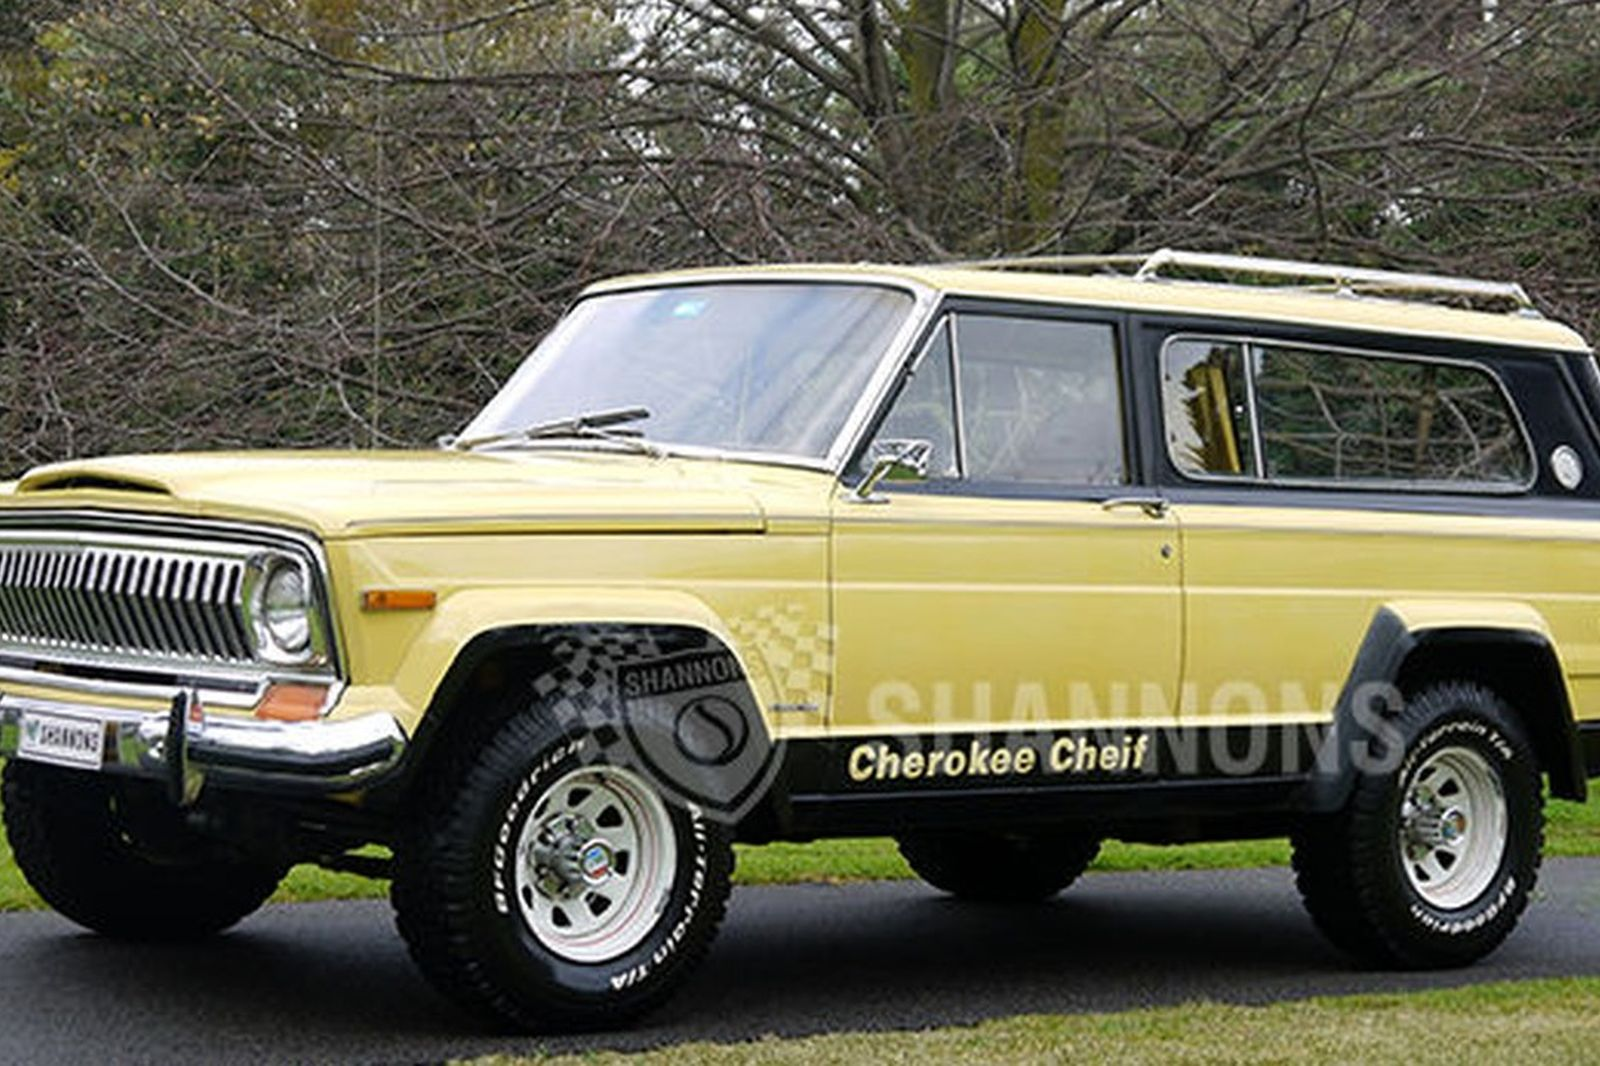 sold: jeep cherokee chief wagon (rhd) auctions - lot 22 - shannons